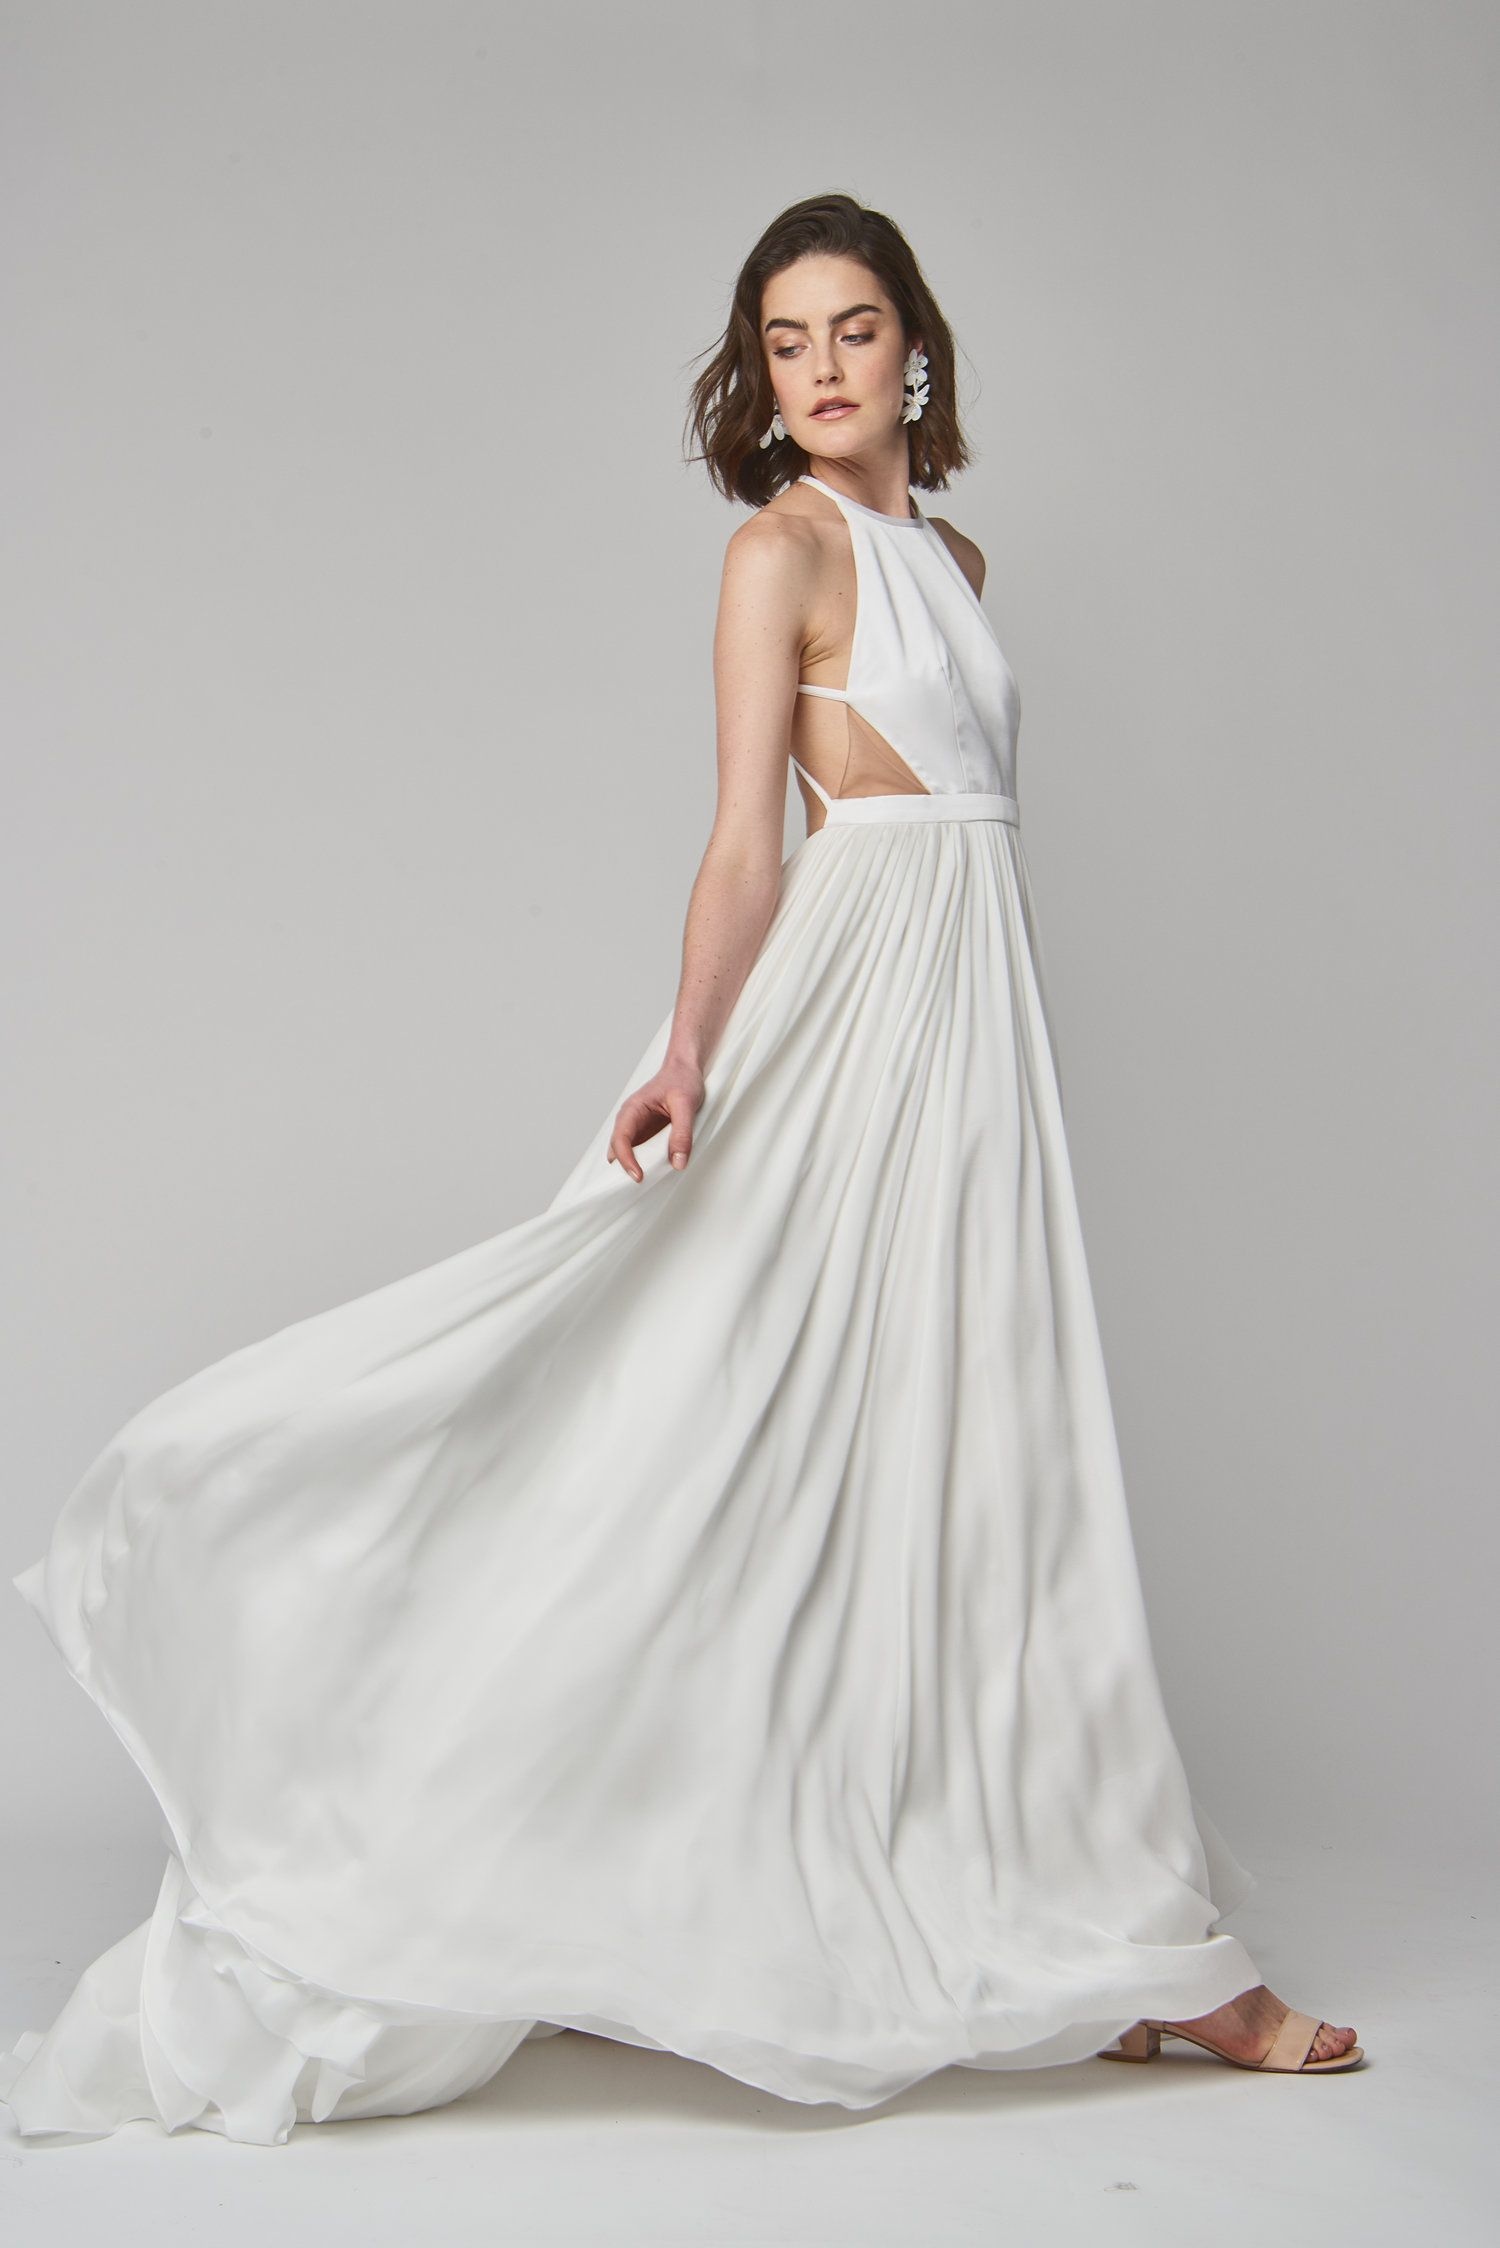 Pin by brooke walker on gowns pinterest gowns wedding dresses